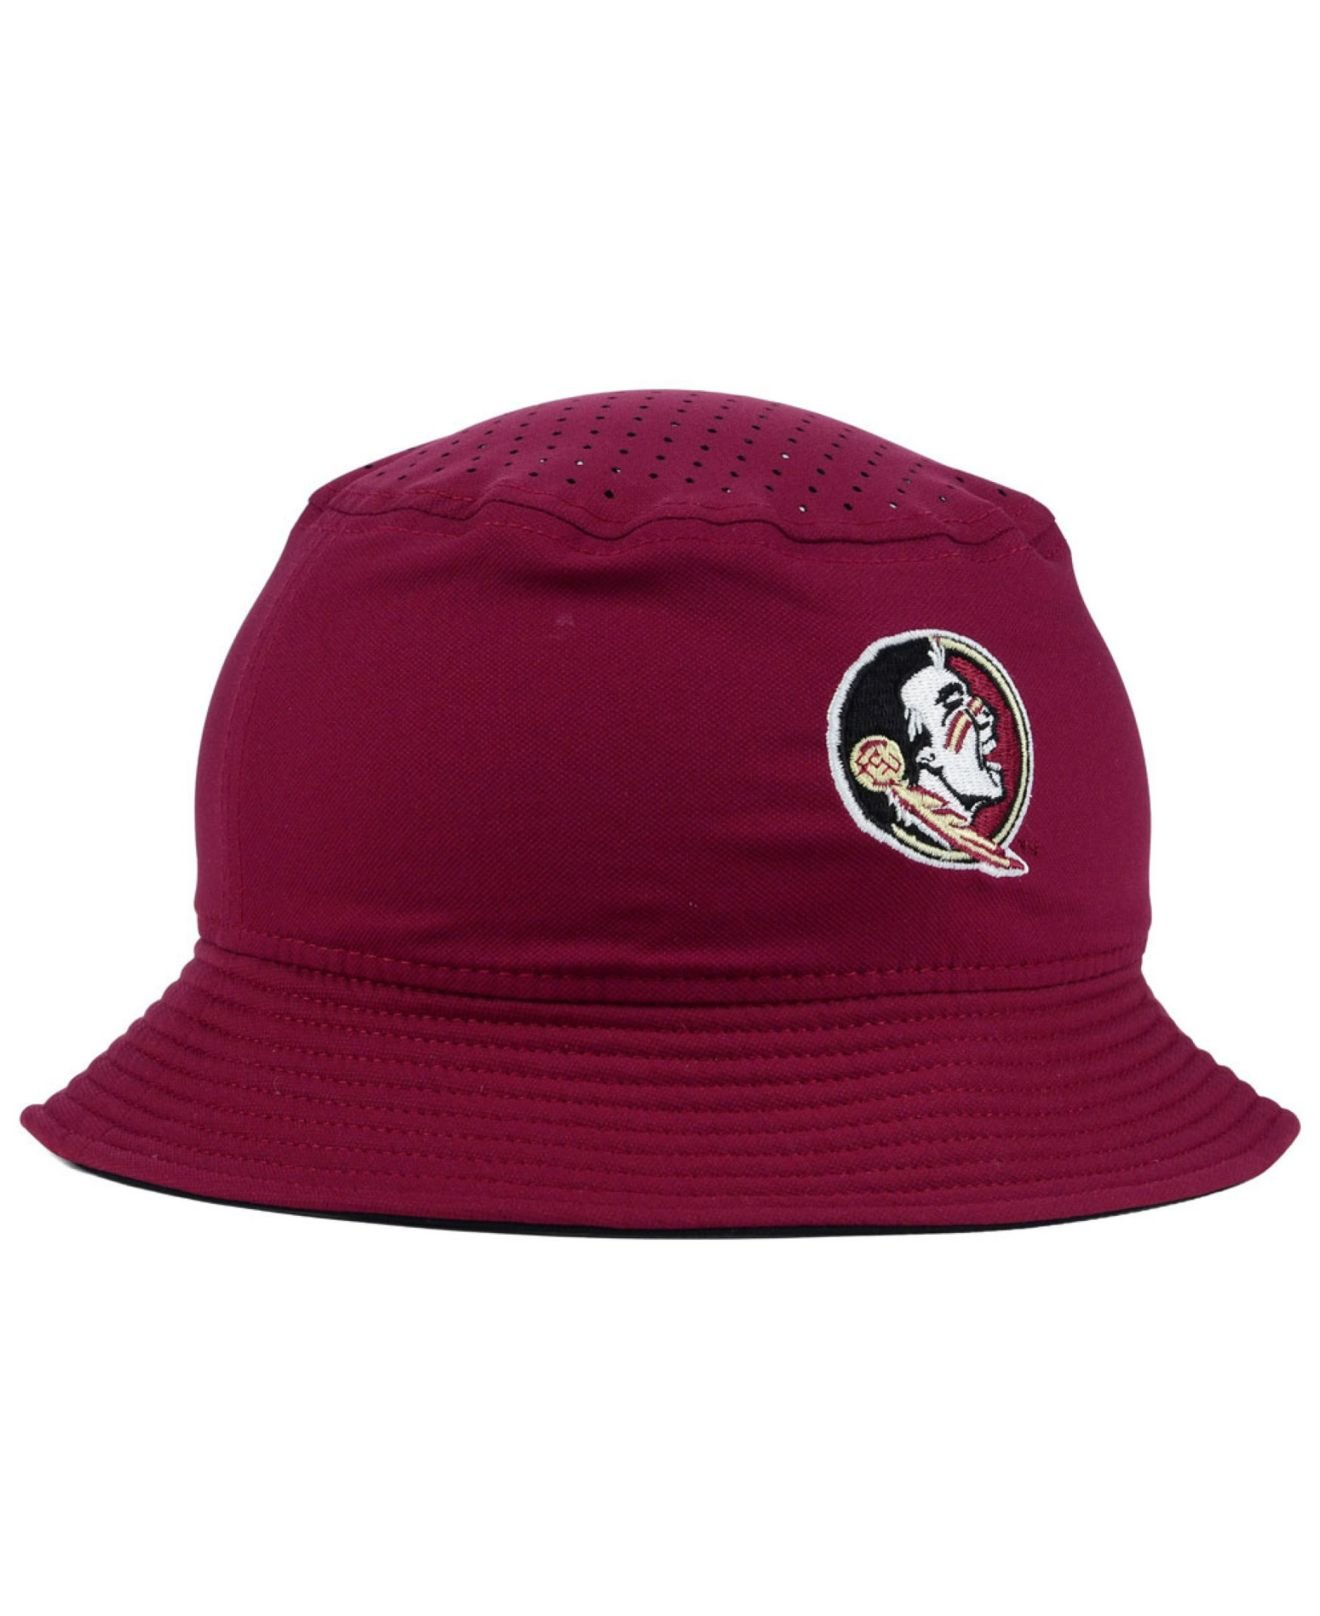 detailing 0f769 deae7 ... discount lyst nike florida state seminoles vapor bucket hat in red for  men 293d0 6b955